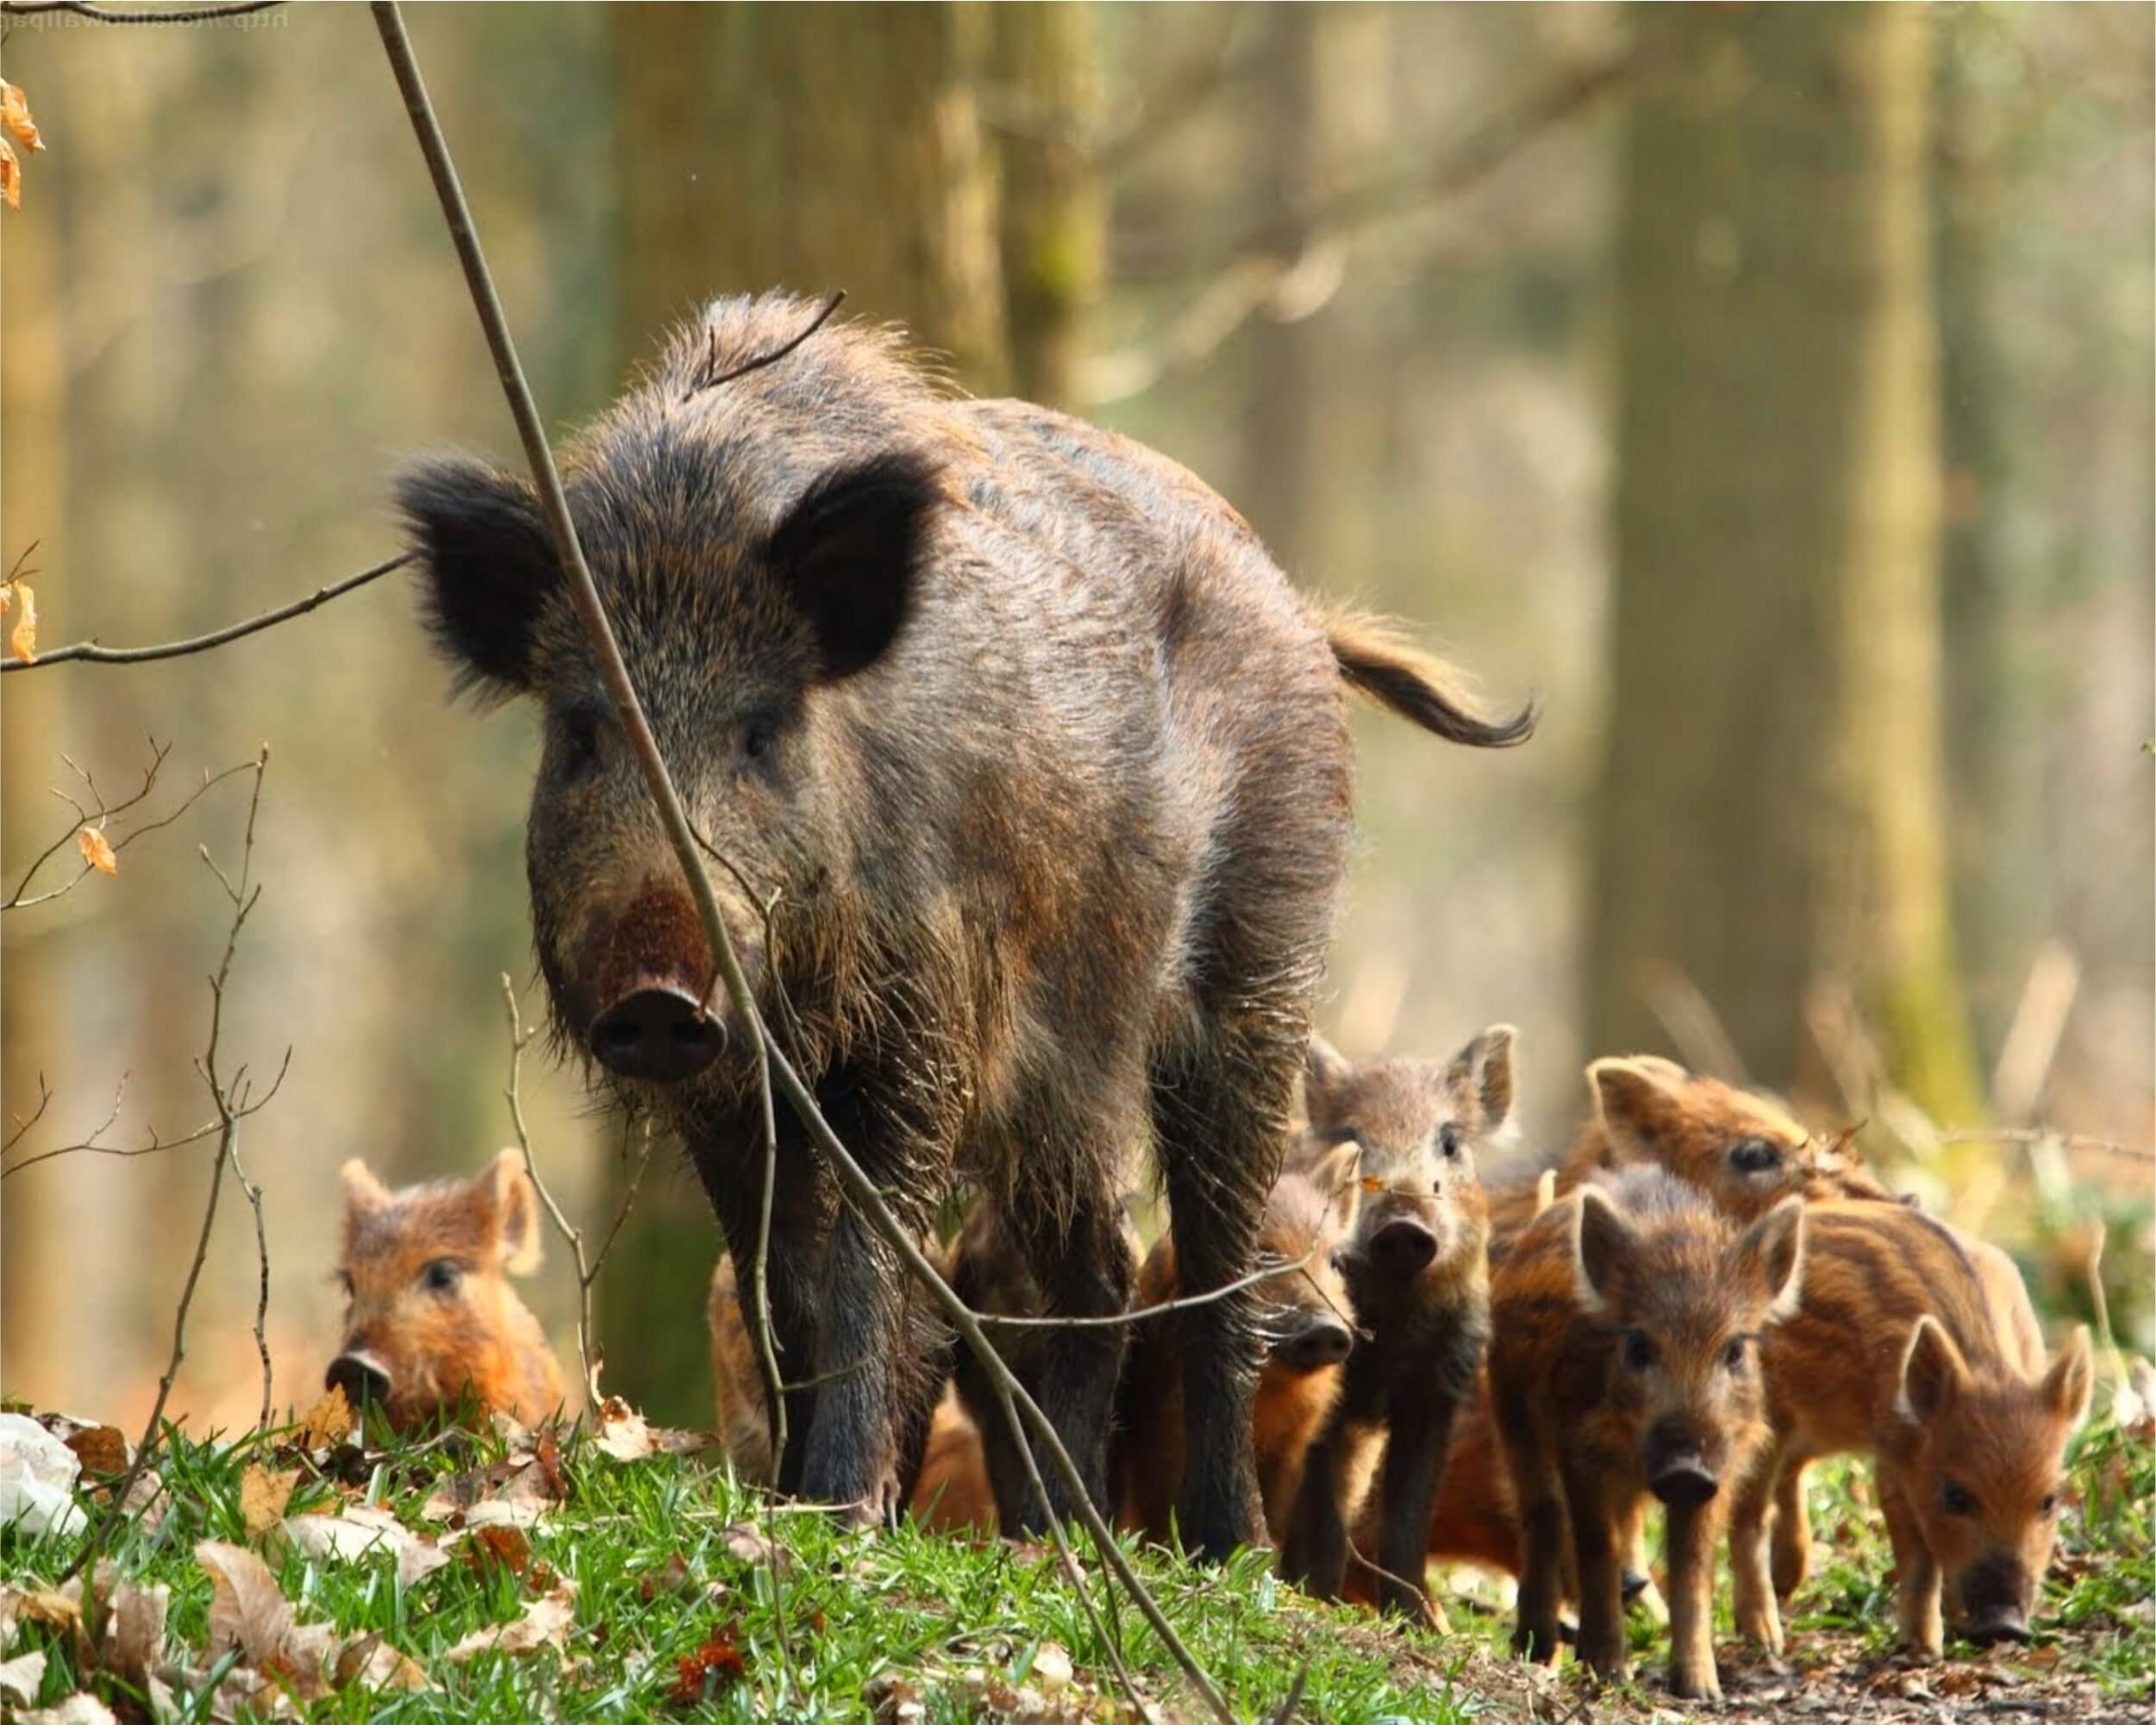 Wild boar baiting tips and techniques - Romania Hunting